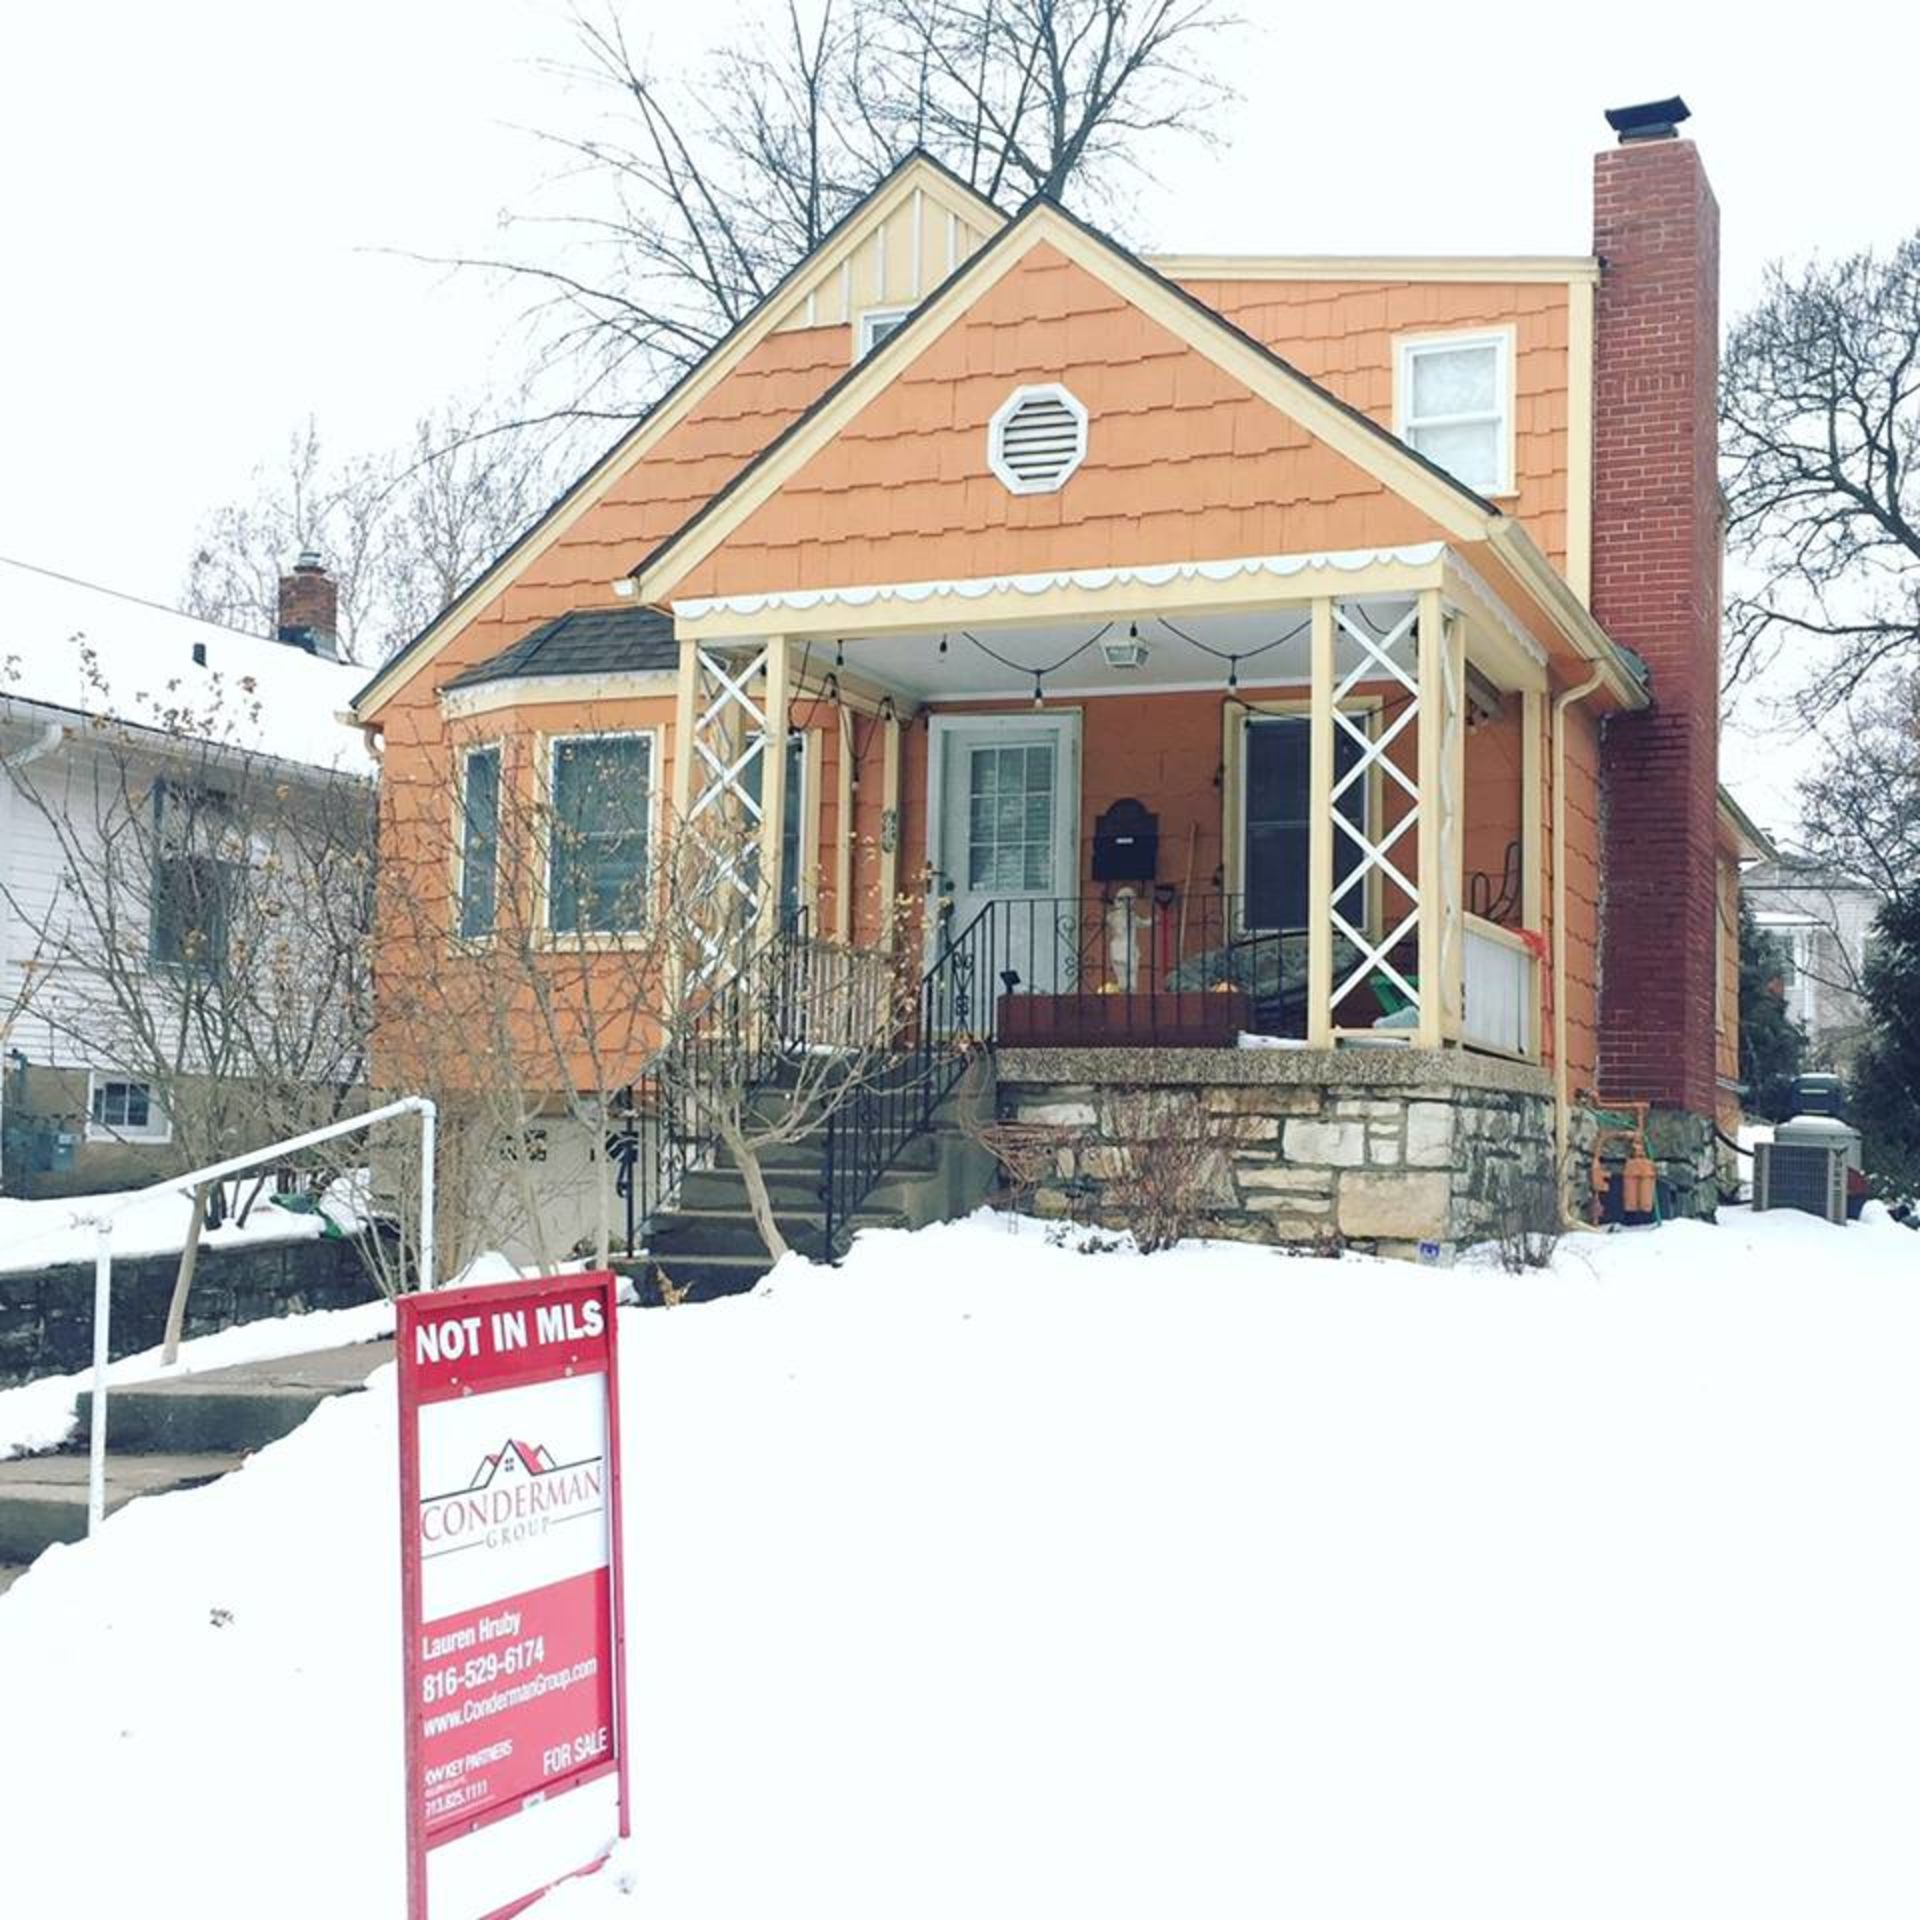 COMING SOON!  Westport Storybook Bungalow Oozing with Charm!